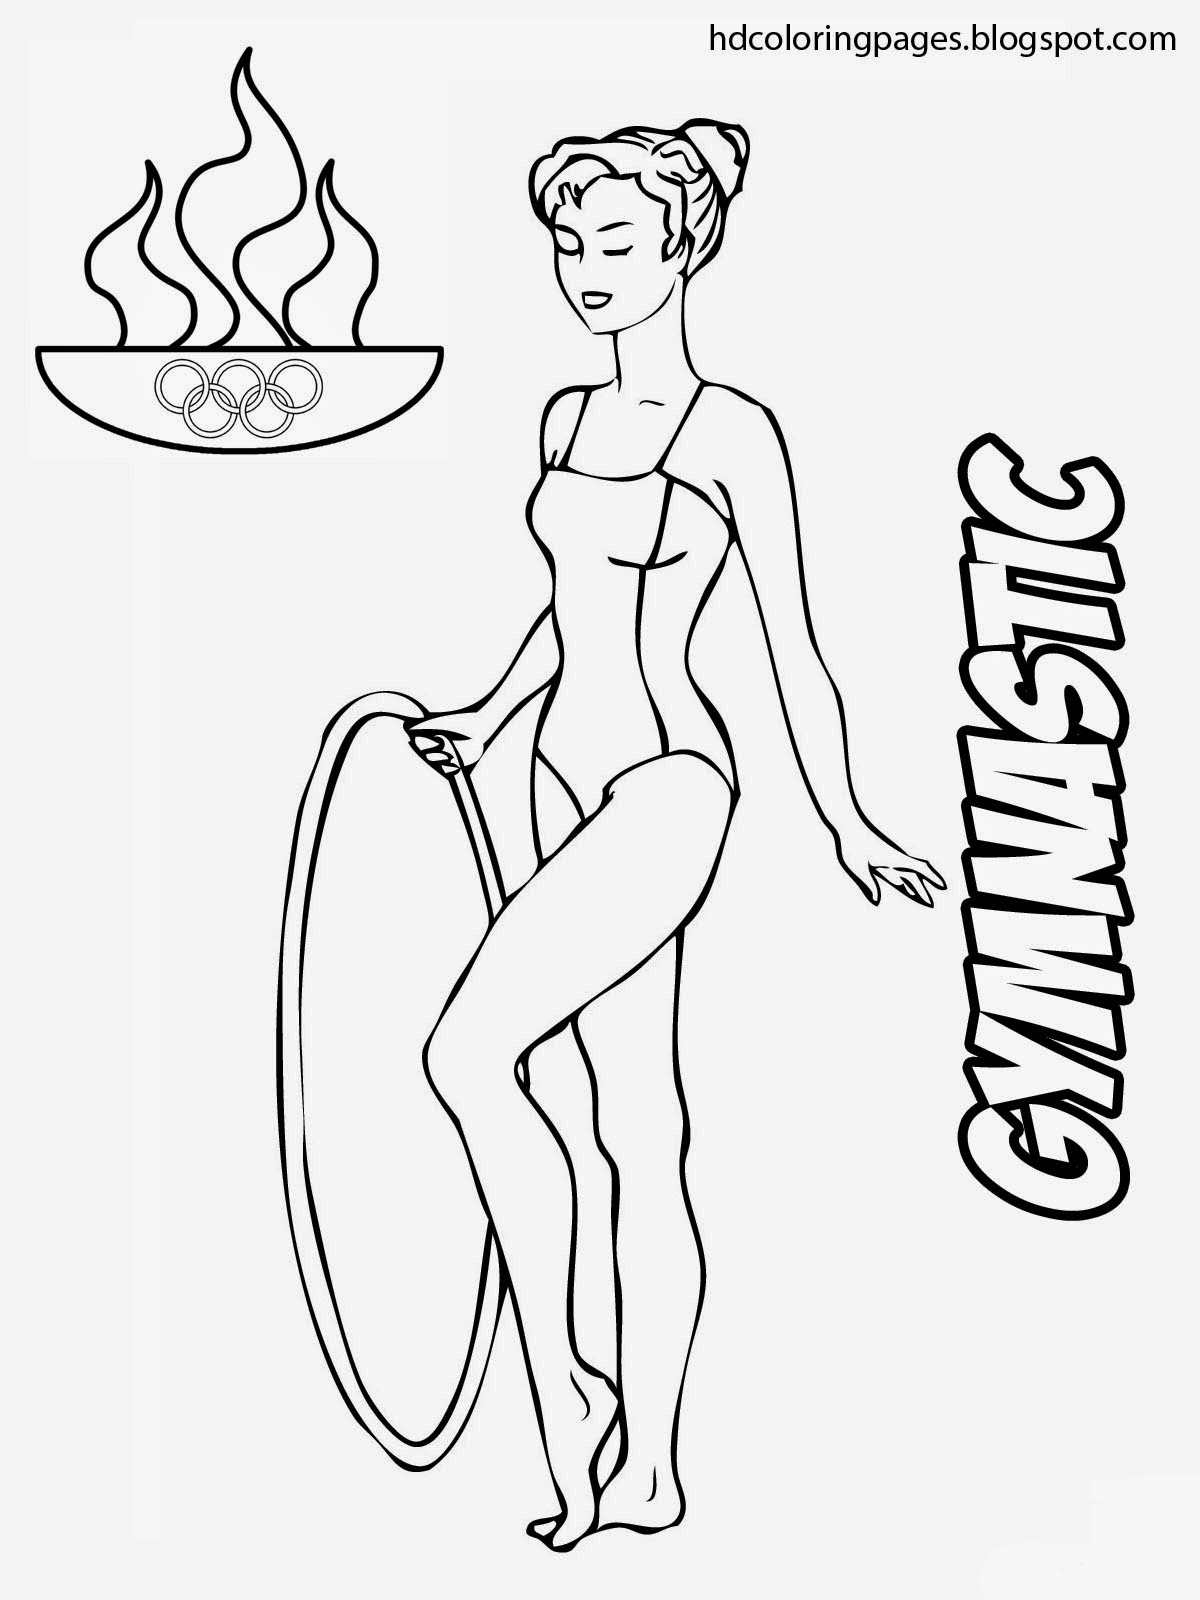 Coloring pictures gymnastics - Gymnastic Coloring Pages Olympic